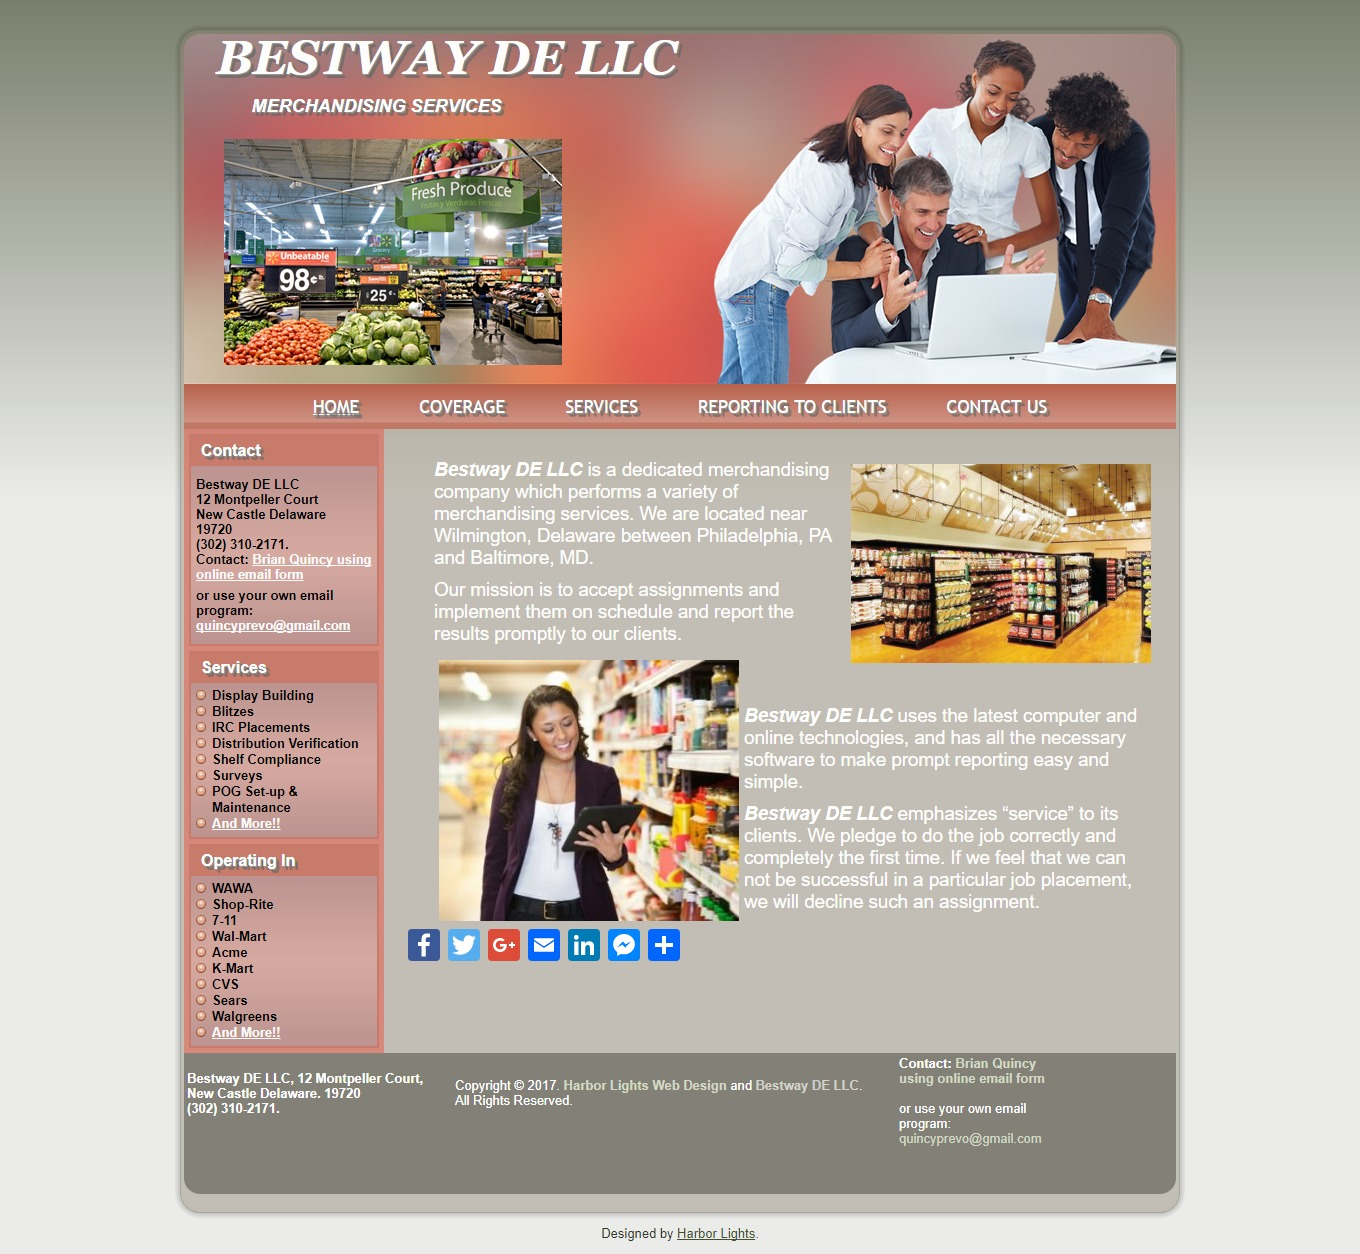 FireShot Capture 6 - Bestway DE LLC – Merchandising Services - http___bestwaymerchandisers.net_blog_